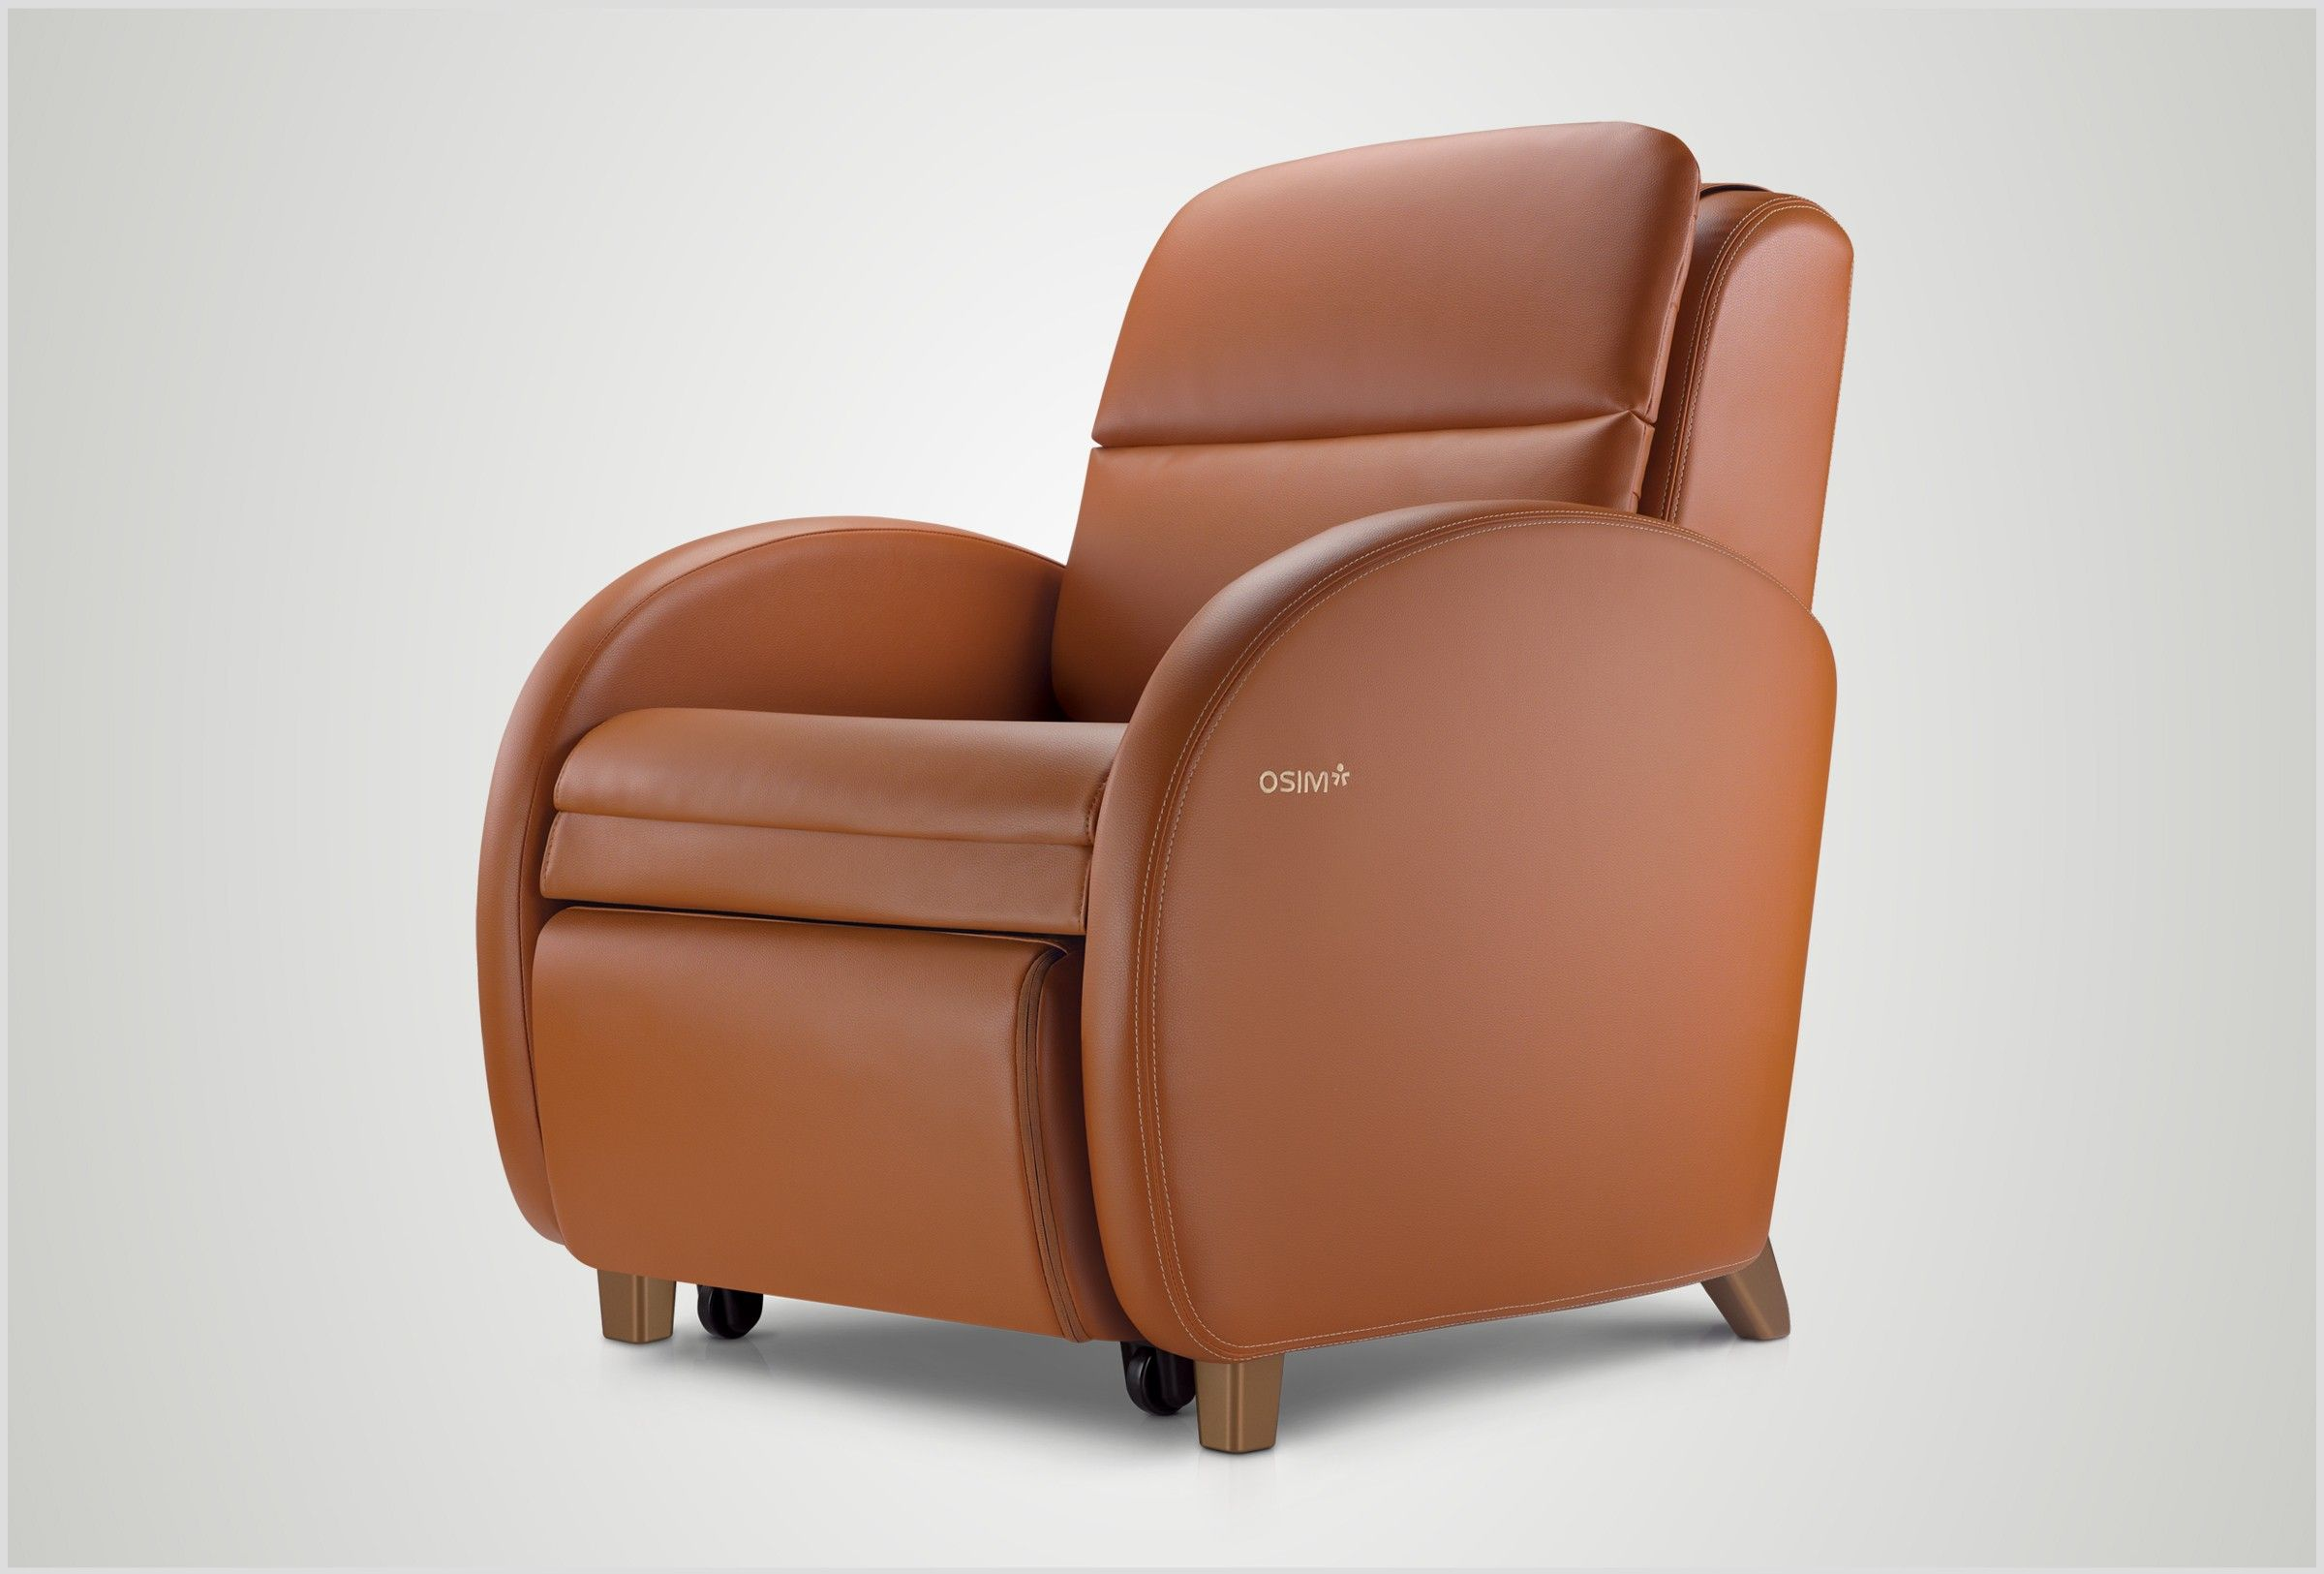 uDiva Classic Massage Sofa Chair, Massage chairs, Lounge